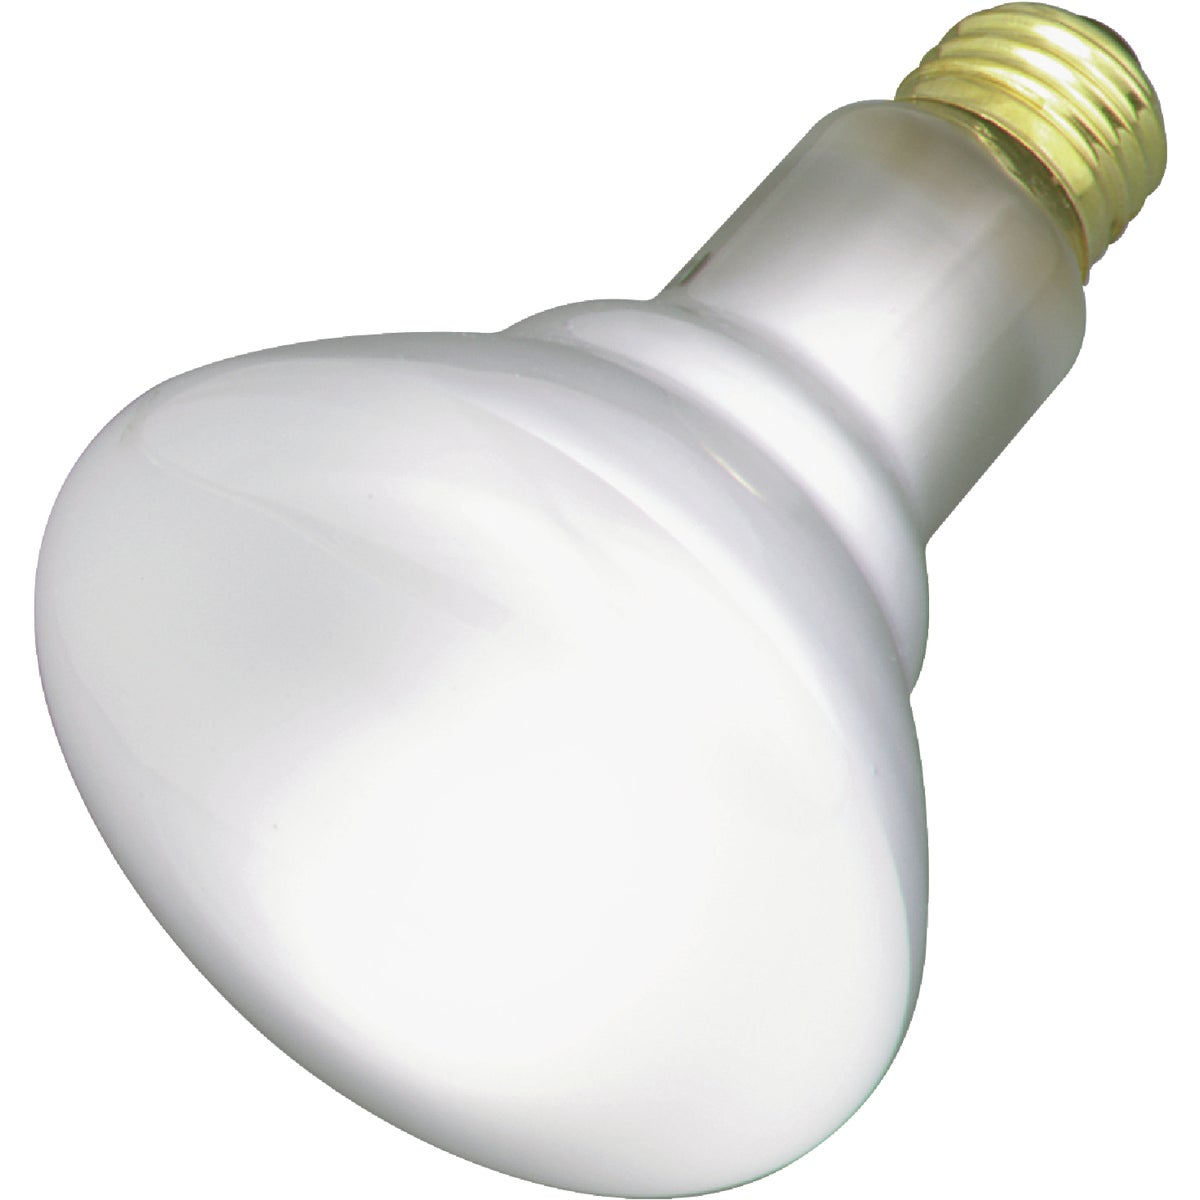 65W REFLECTOR BULB - 20331 65R/FL/MI by G E Lighting